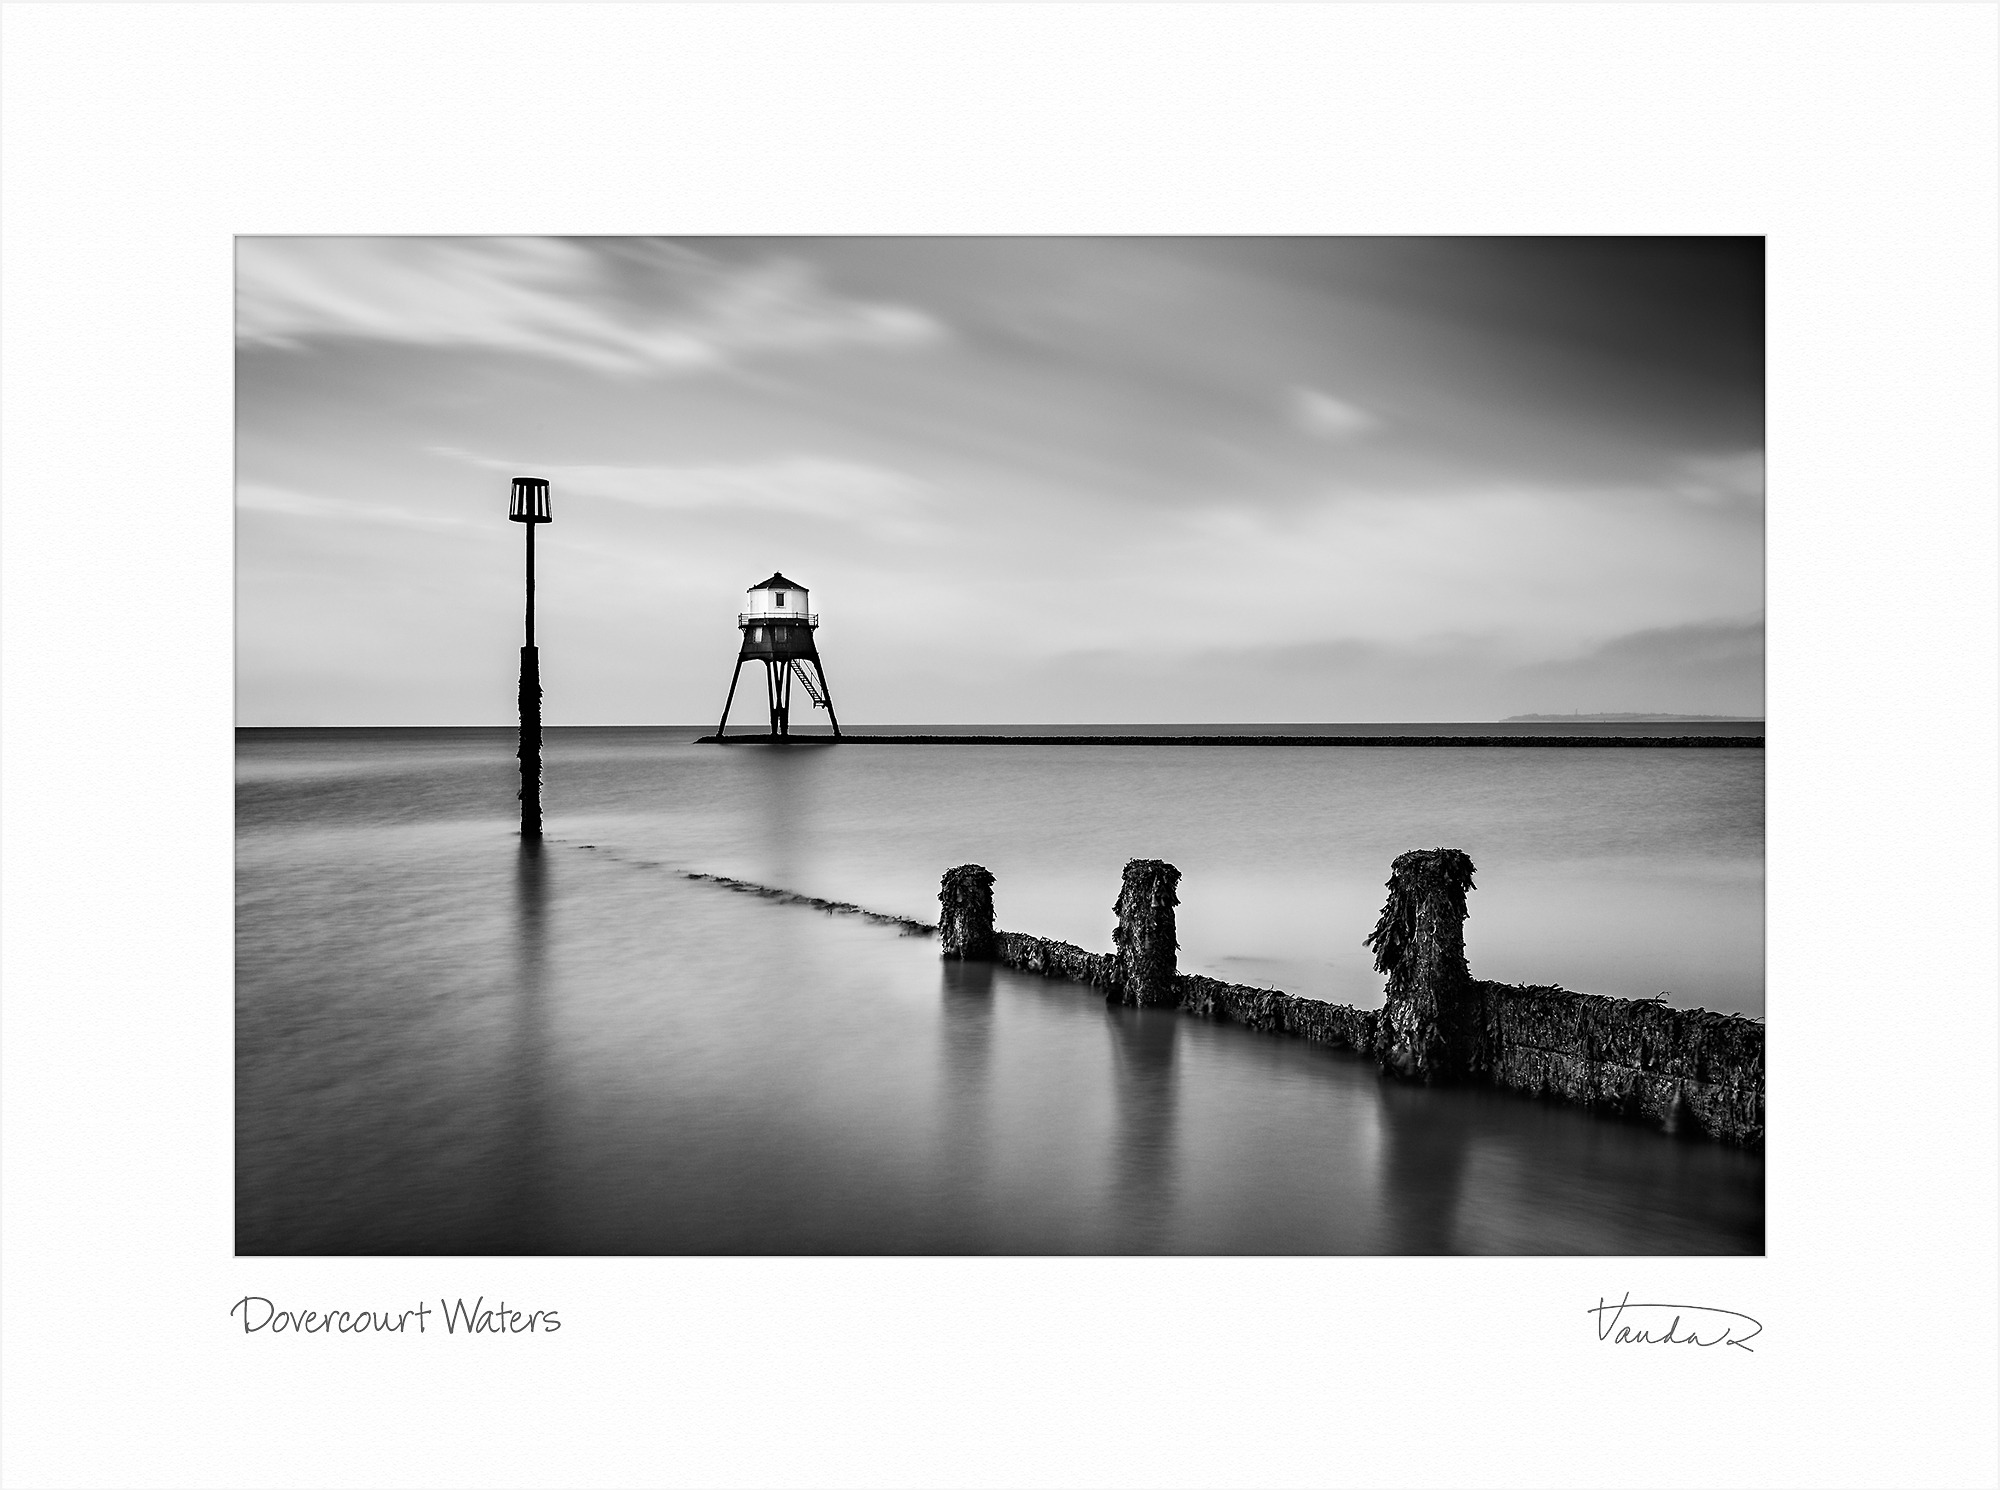 Dovercourt Waters